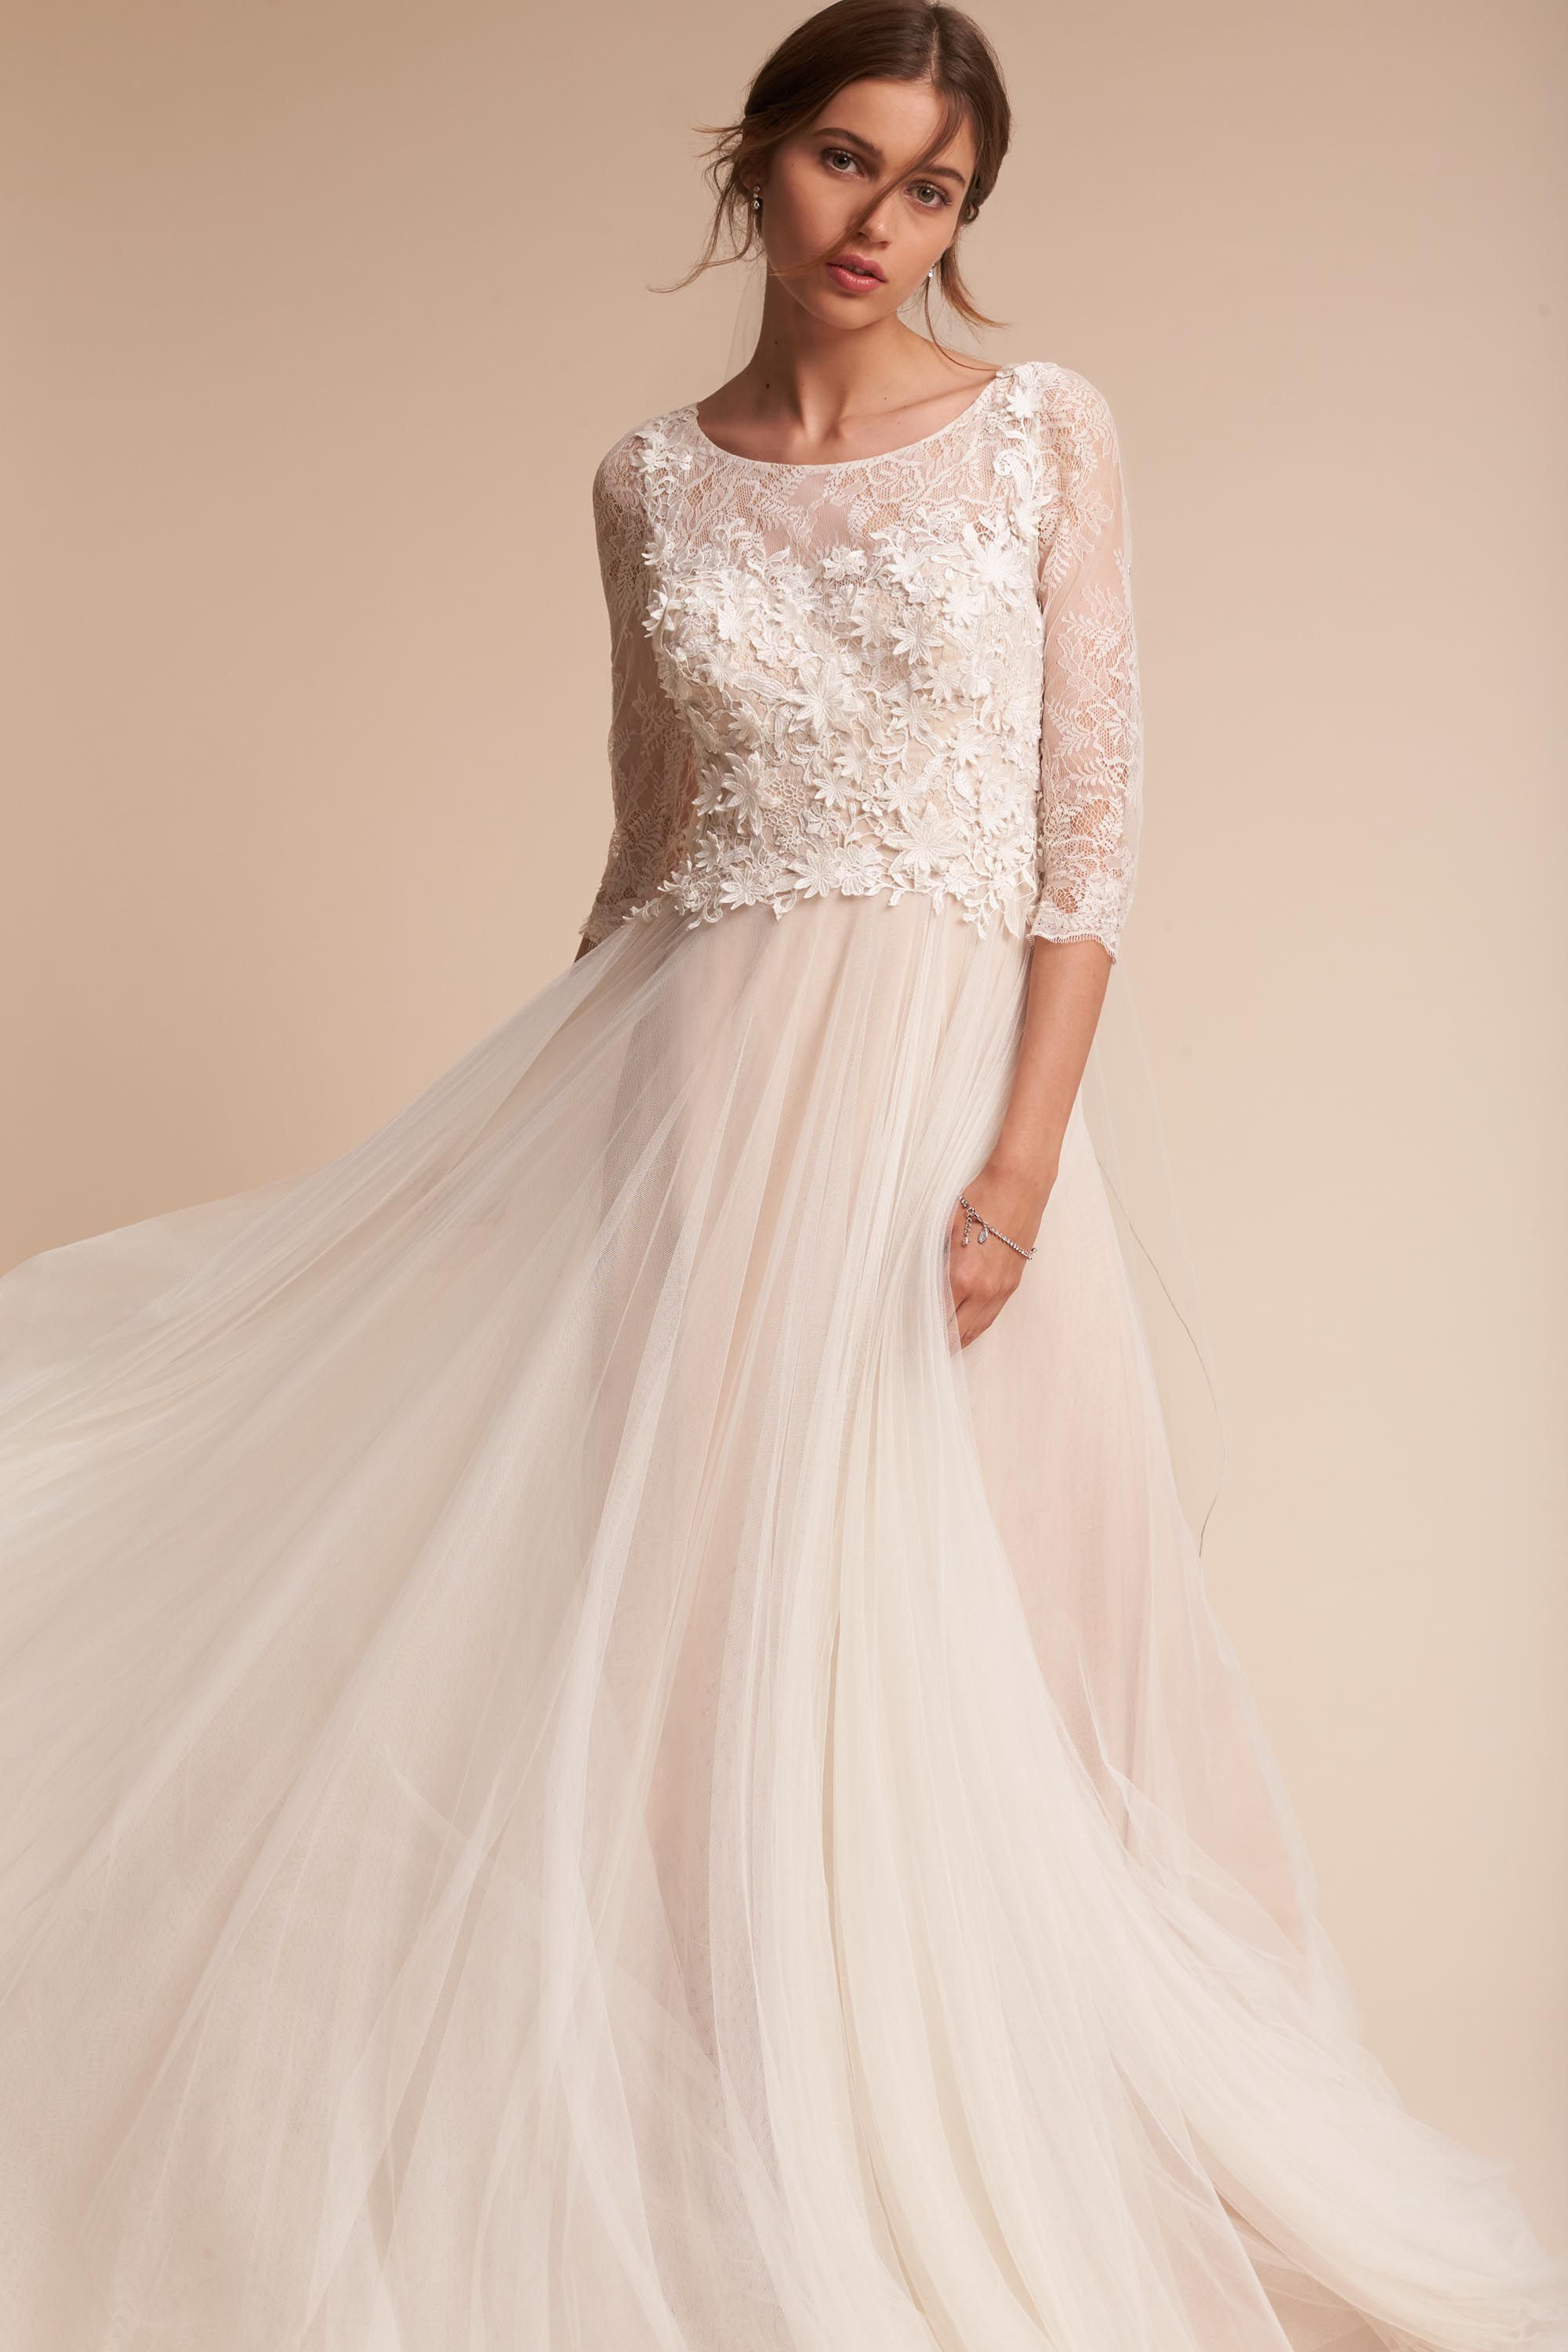 Amelie Gown